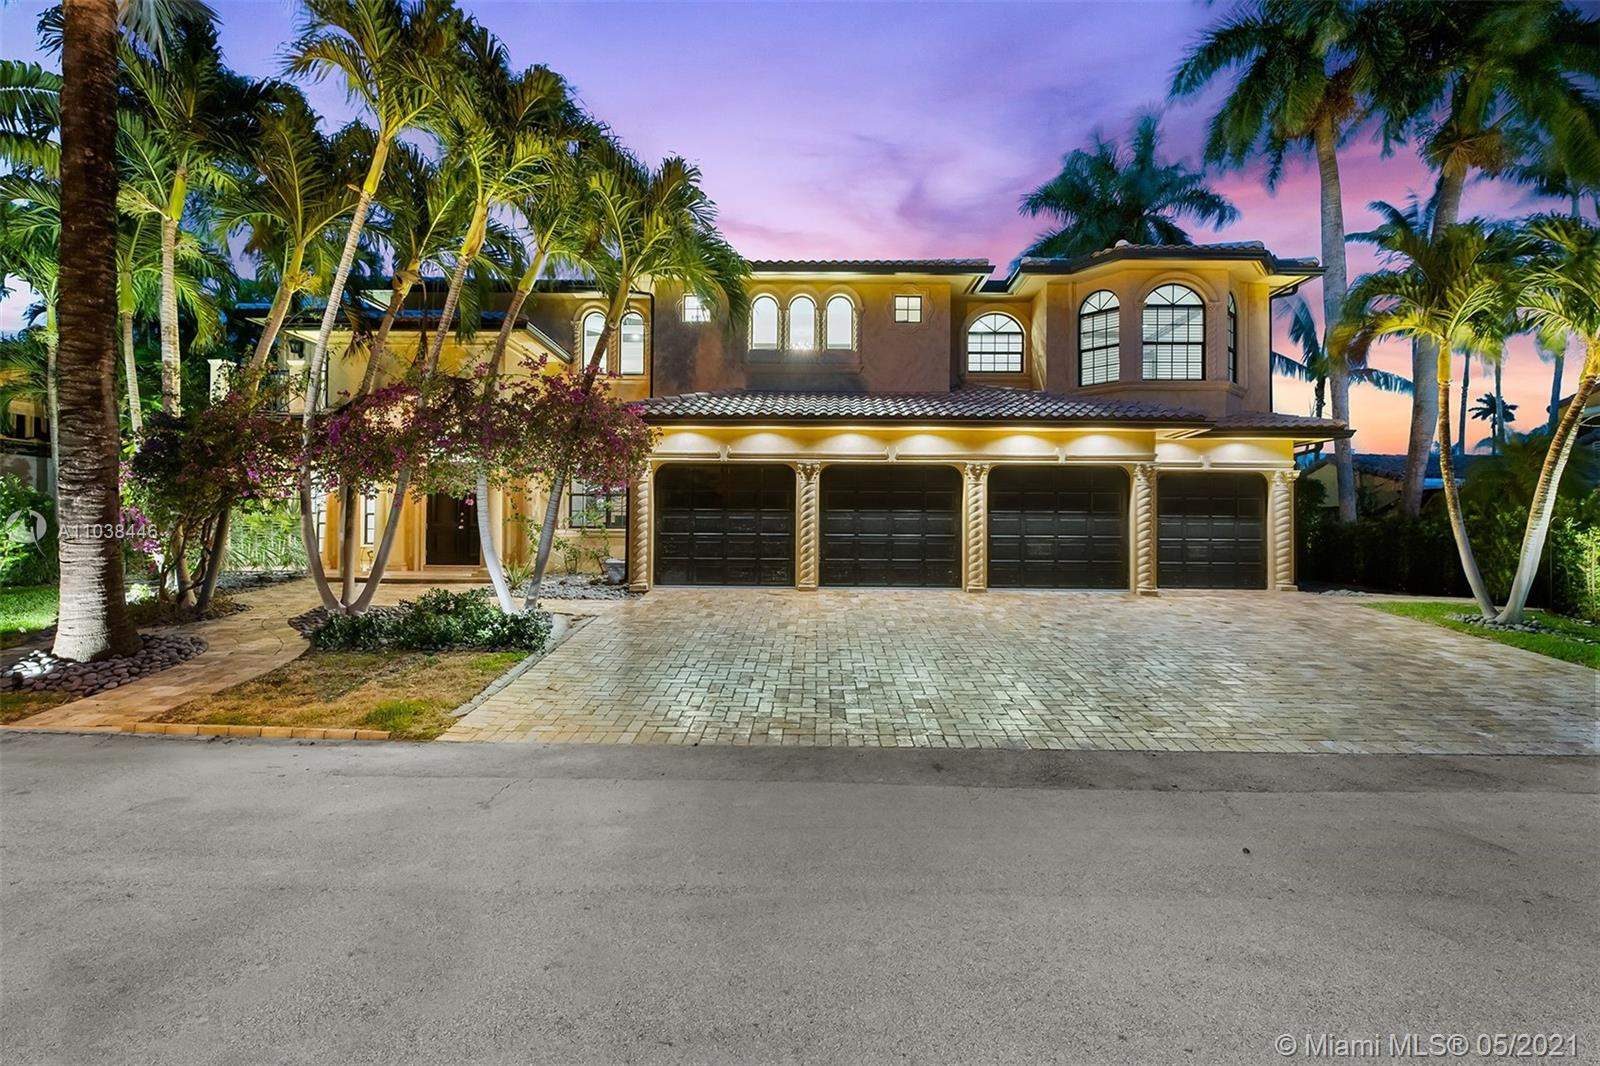 Stunning sophisticated home located in Las Olas Isles within walking distance to famous Fort Lauderdale Beach and Las Olas Blvd. This unique home has never been on the market and features 6 bedrooms one of which is a separate nanny or in law suite. With 100 feet on the water & 4 car garage, this gorgeous property checks all the boxes. The home offers a wide open floor plan ideal for luxury living and entertaining. New pool with River Stone finish along with a summer kitchen makes this an ideal property for family living. Pool deck faces east so no hot afternoon sun on your entertaining area. Composite dock has a hoist. Home also features one bedroom downstairs & huge master suite upstairs overlooking the pool & waterway. The flow of this floorplan is perfect! You won't be disappointed!!